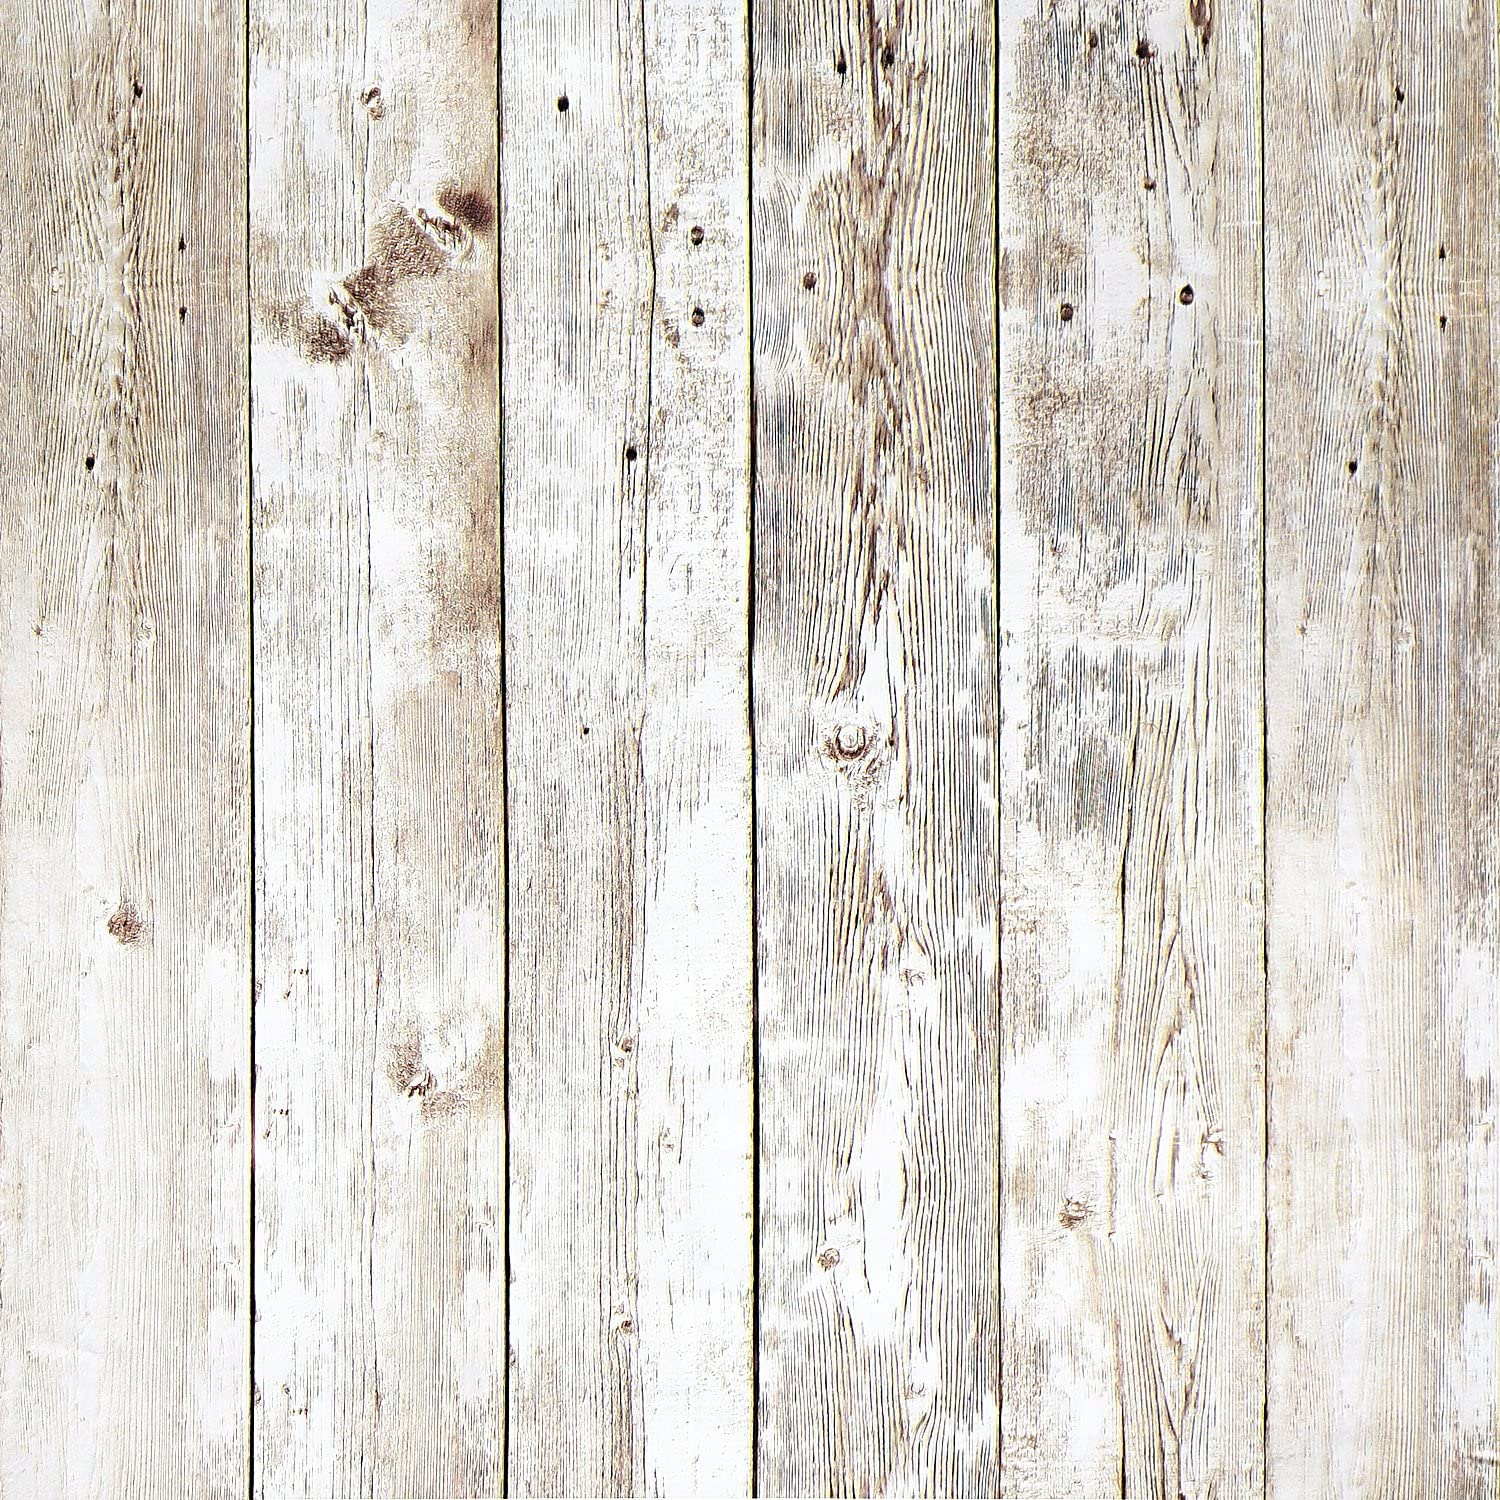 LUCKYYJ Wood Self Adhesive Paper, Removable Wood Peel and Stick Wallpaper Decor Wall Covering Vintage Wood Panel Interior Film brown wood papers wood peel and stick wallpaper removable wood grain self adhesive vintage distressed wood grain renovated paper